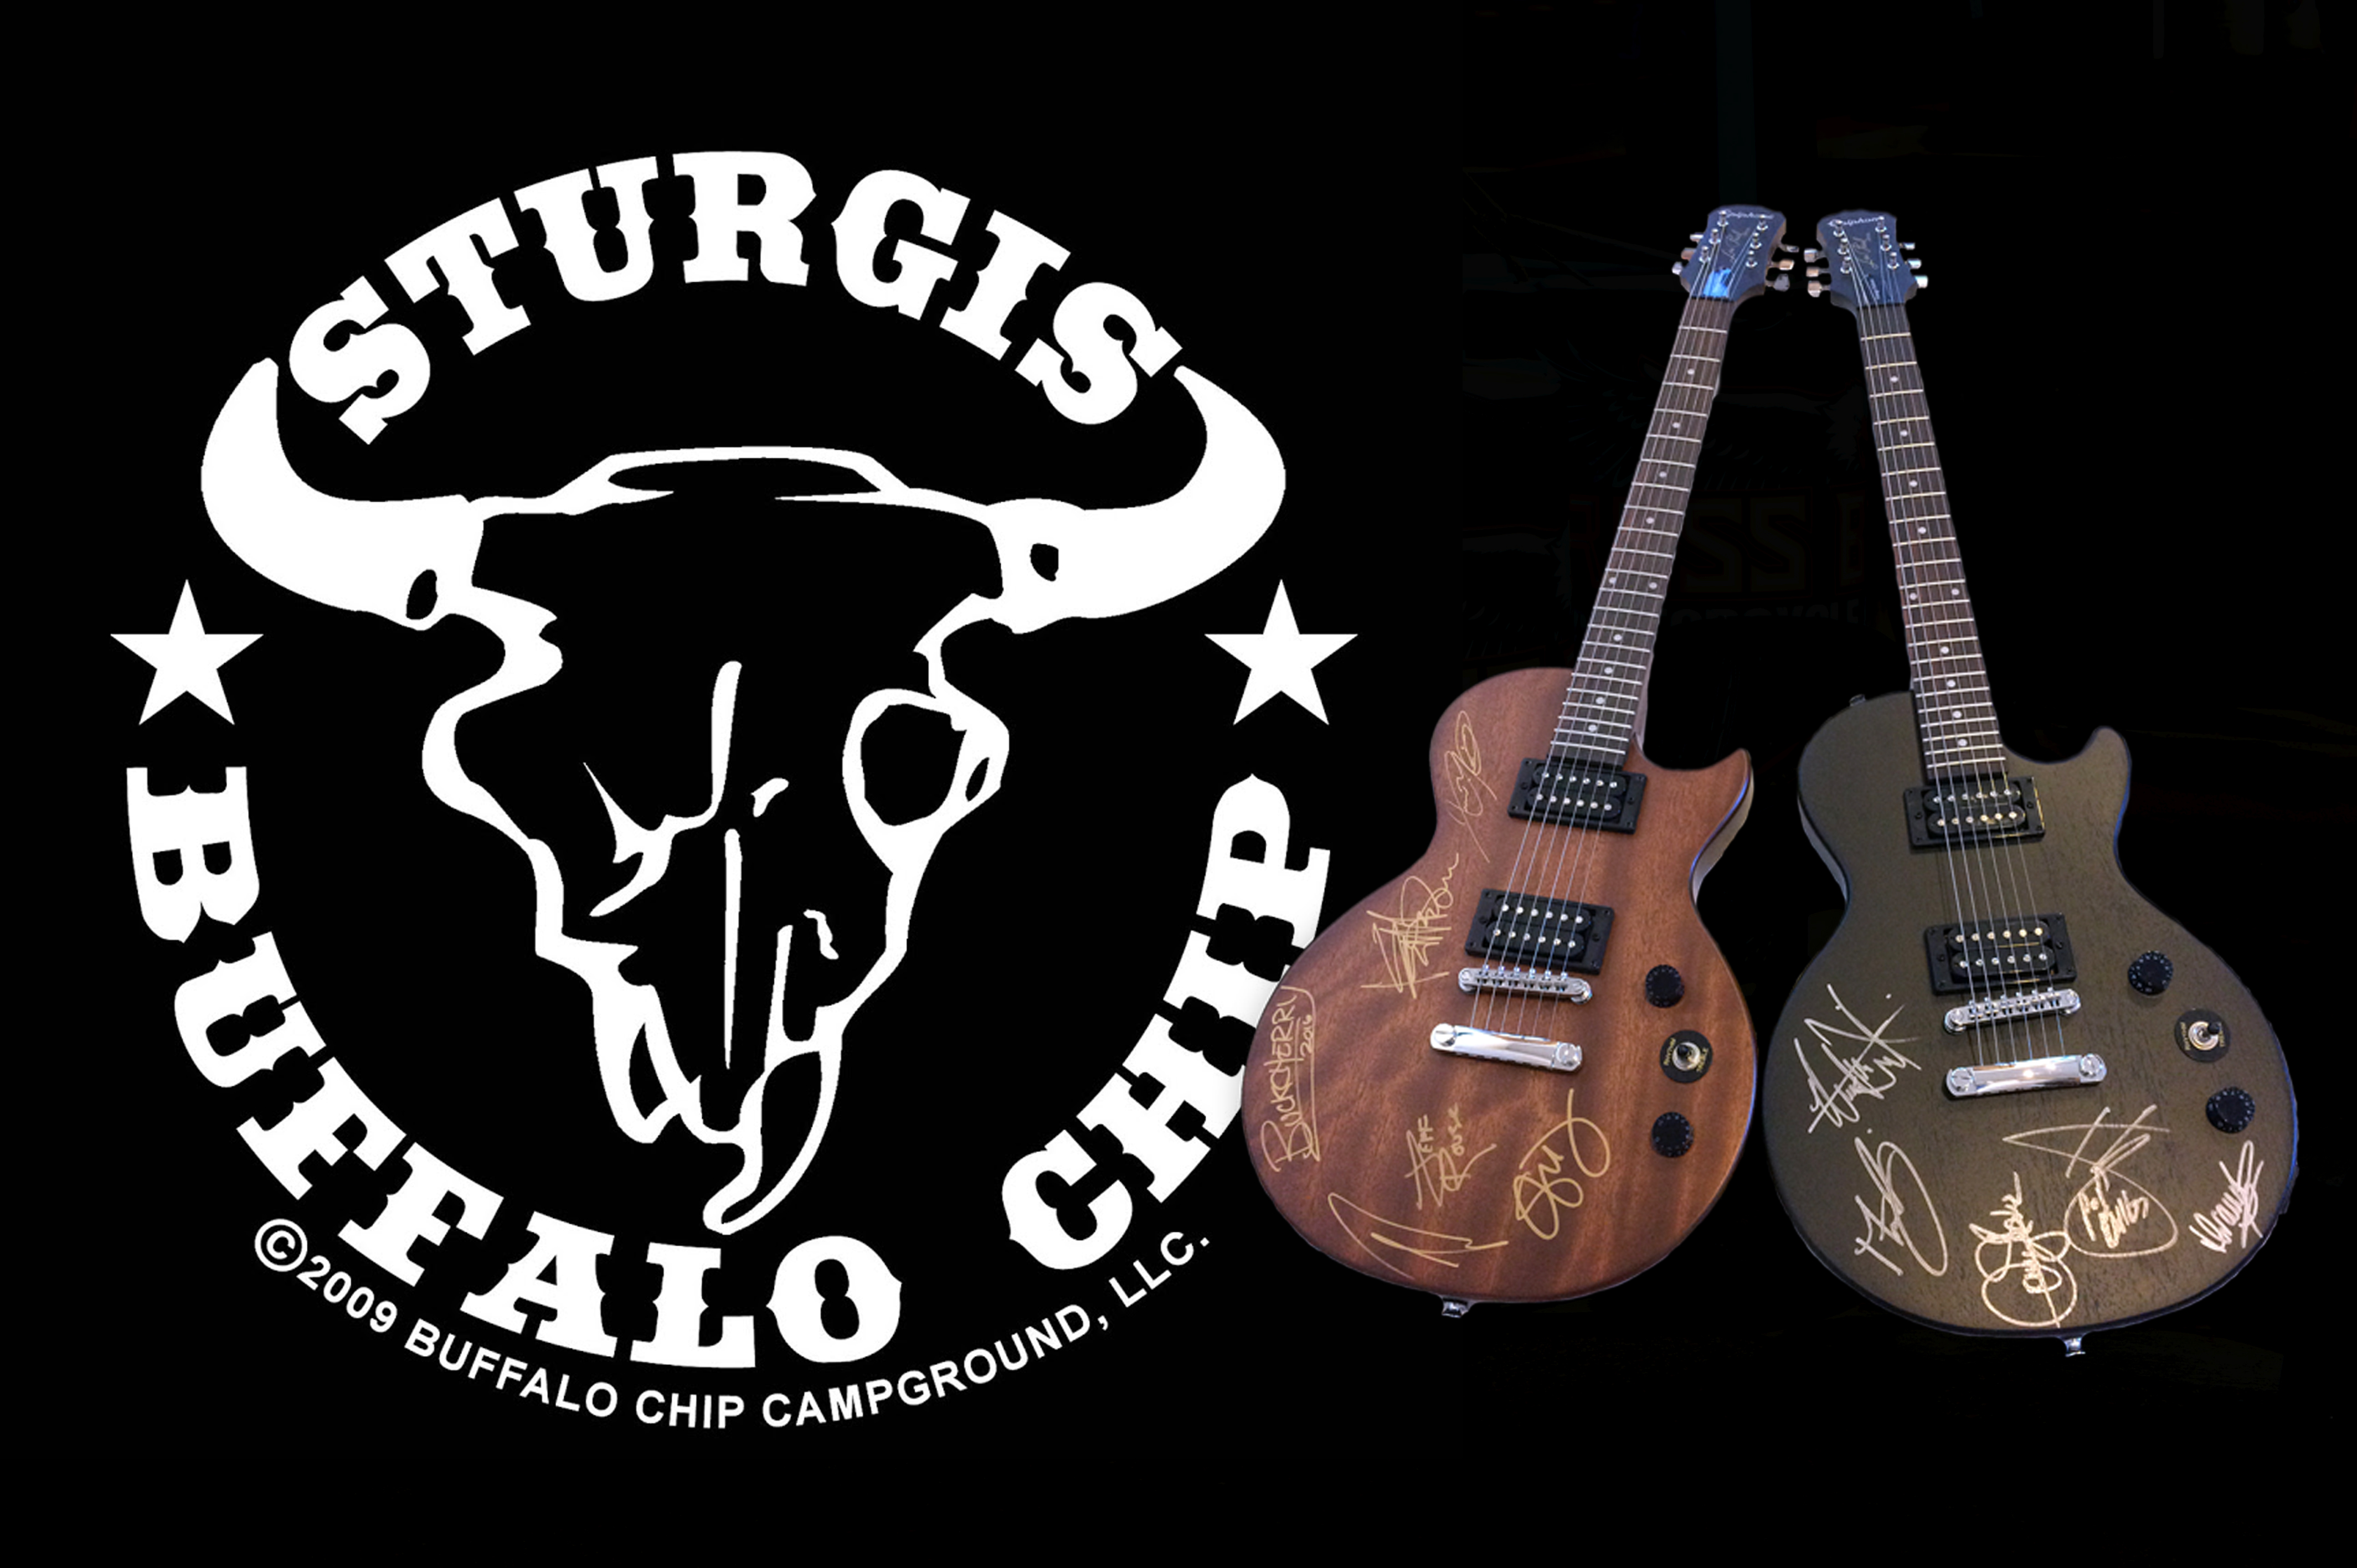 Buffalo Chip Fans to Win Autographed Guitars and Shopping Sprees